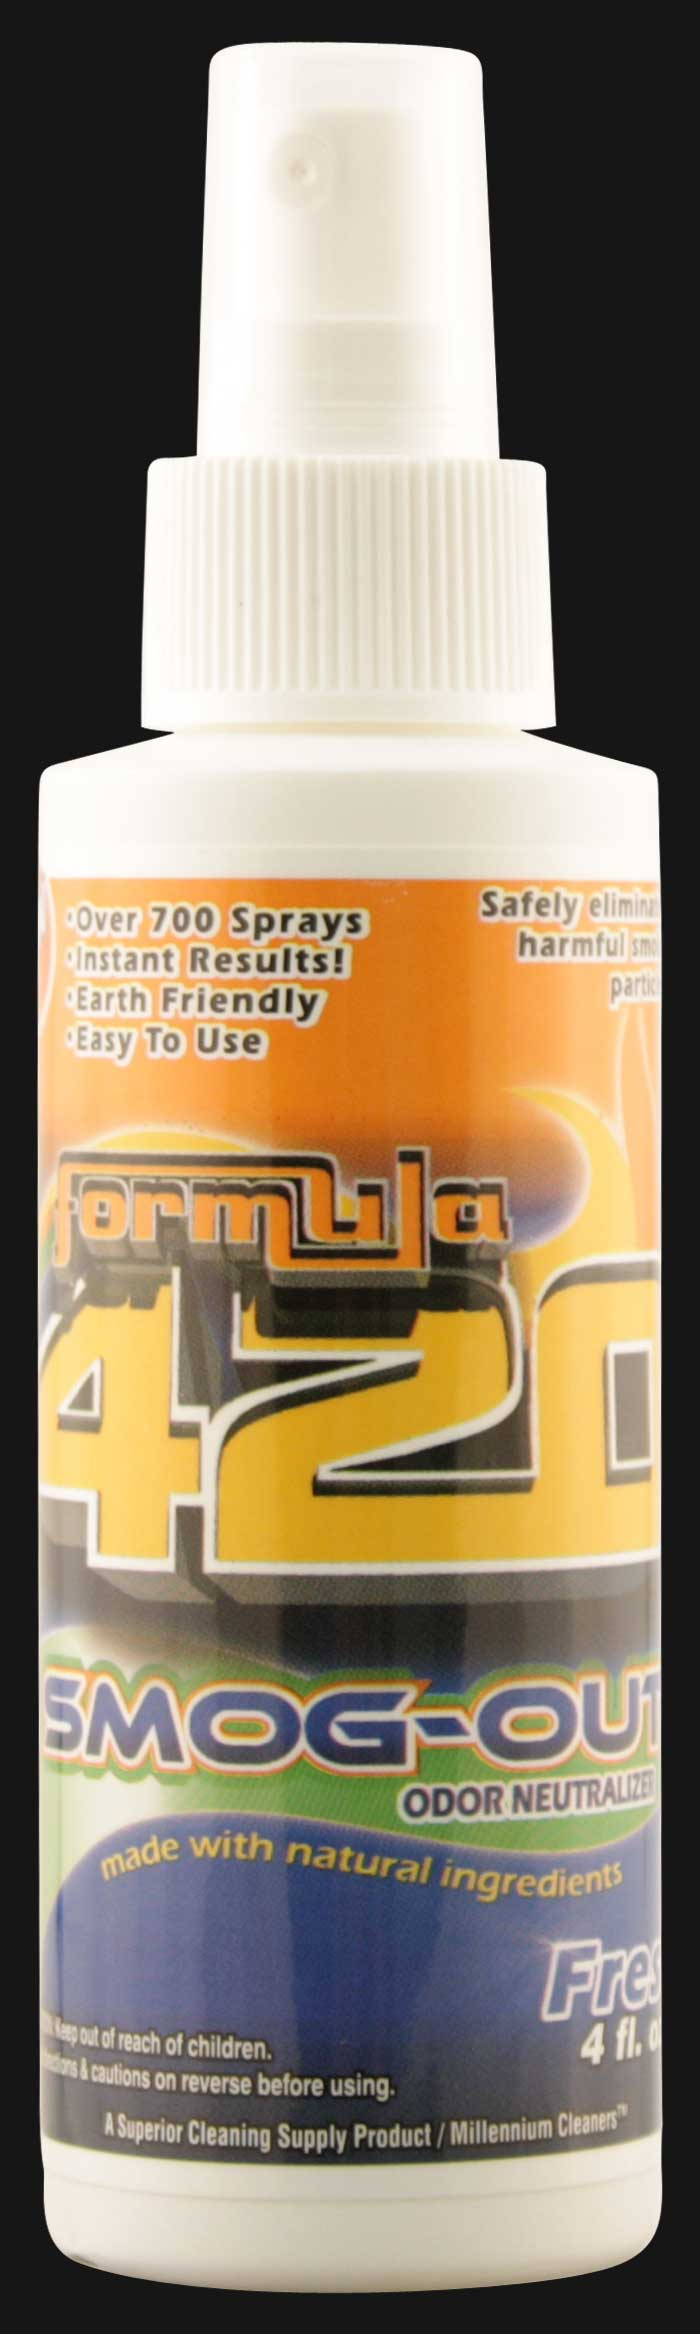 Formula 420 Smog Out Spray